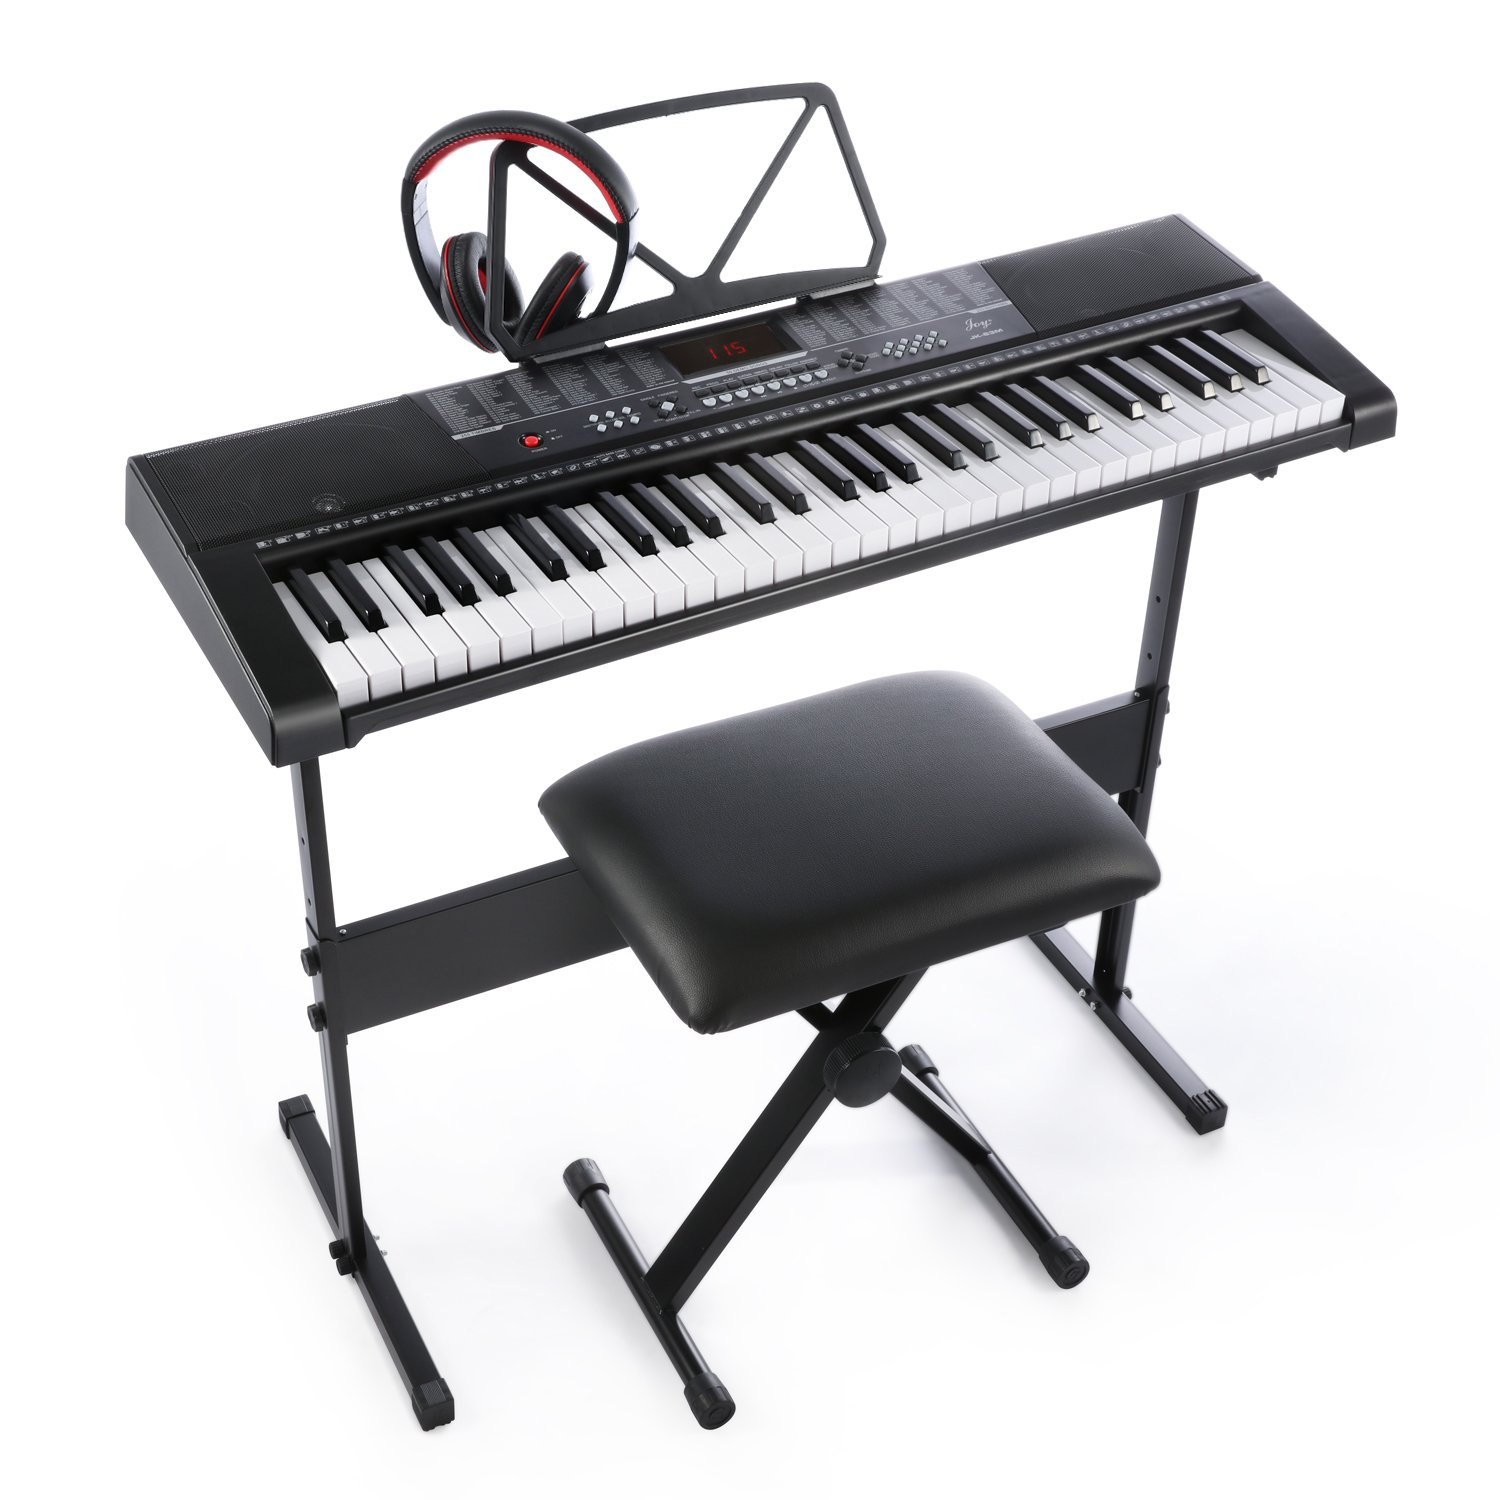 Joy 61 Standard Keys Keyboard with USB Music Player, Including Headphone, Stand, Stool & Power Supply (Jk-63M-Kit) by Joy